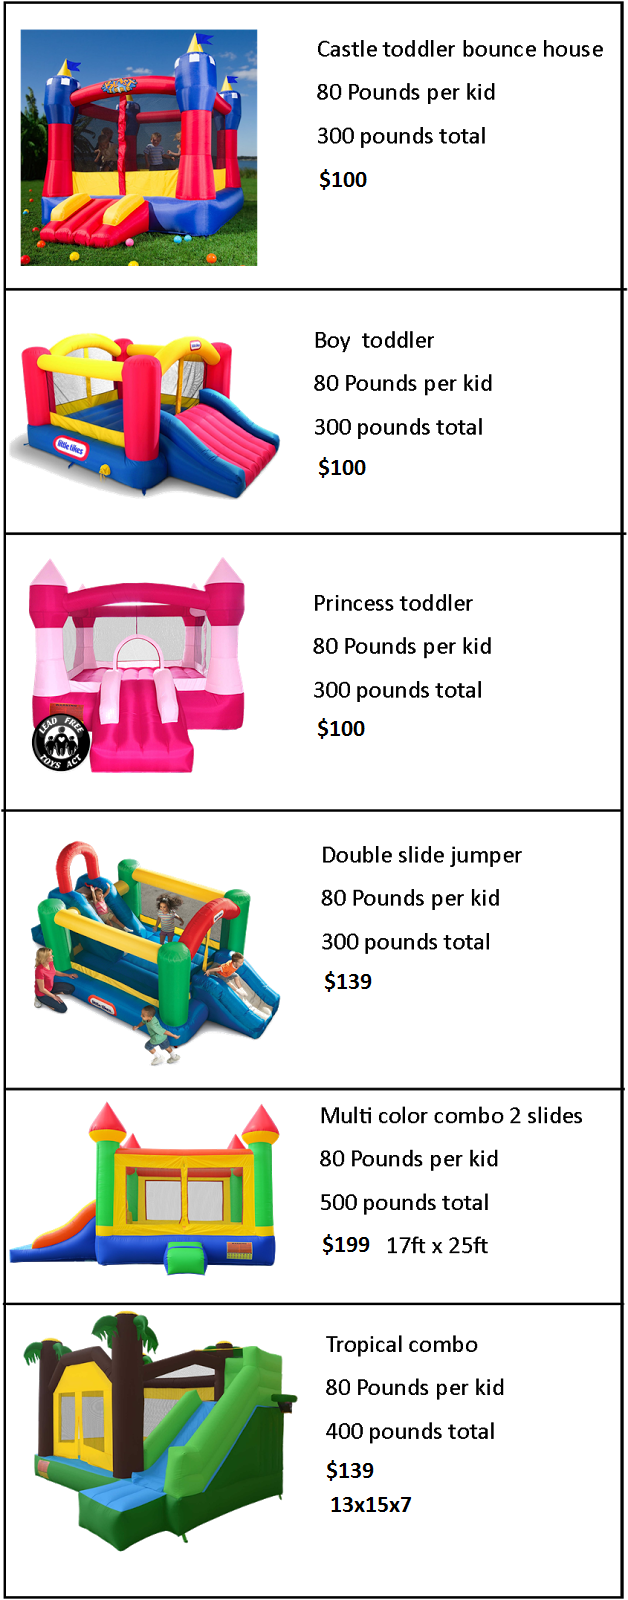 Arizona toddler bounce house rentals prices